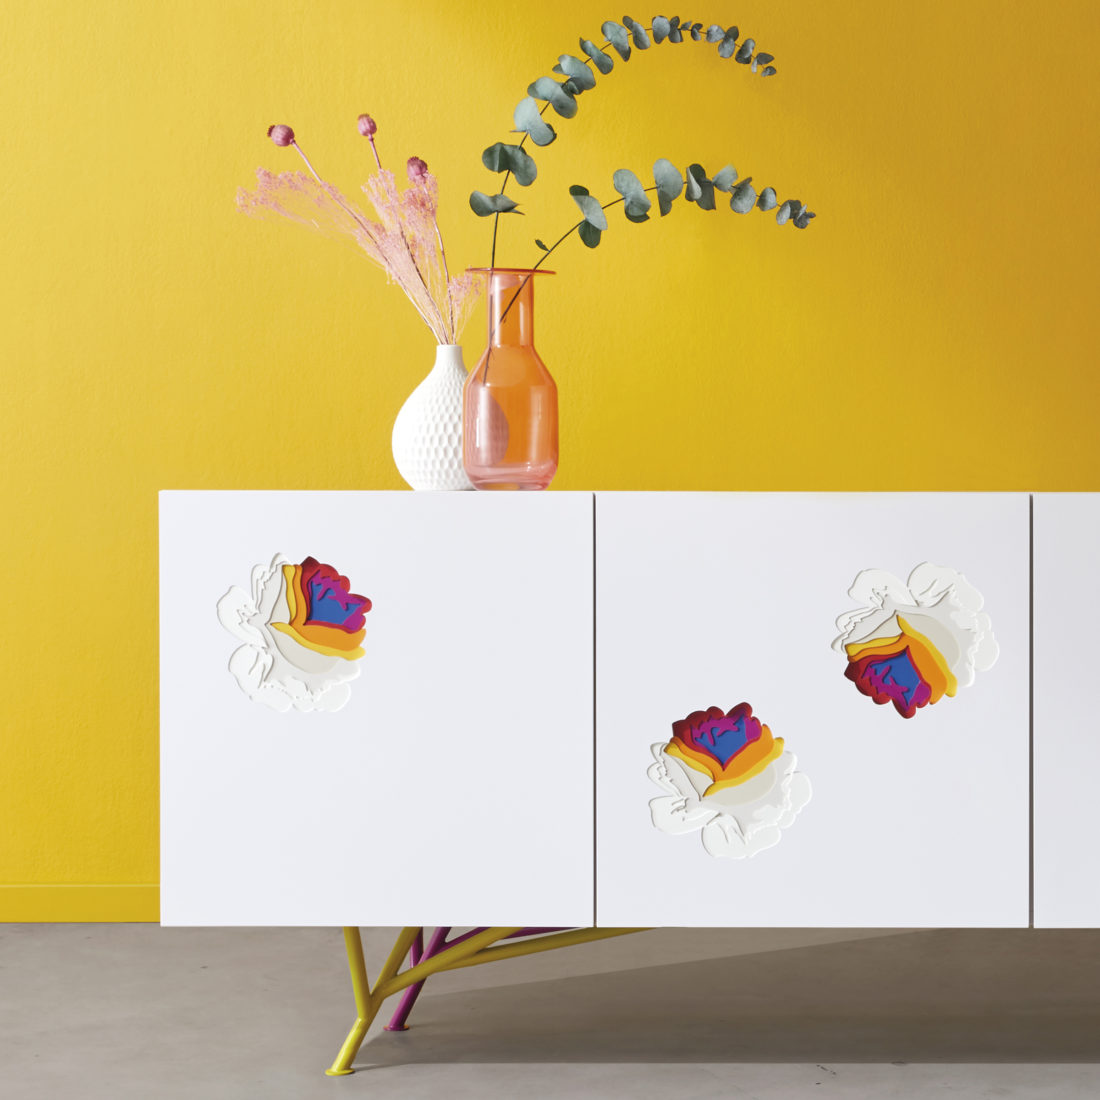 studio design Maud Vantours Hetch Formica meuble enfilade flowa product design Paris